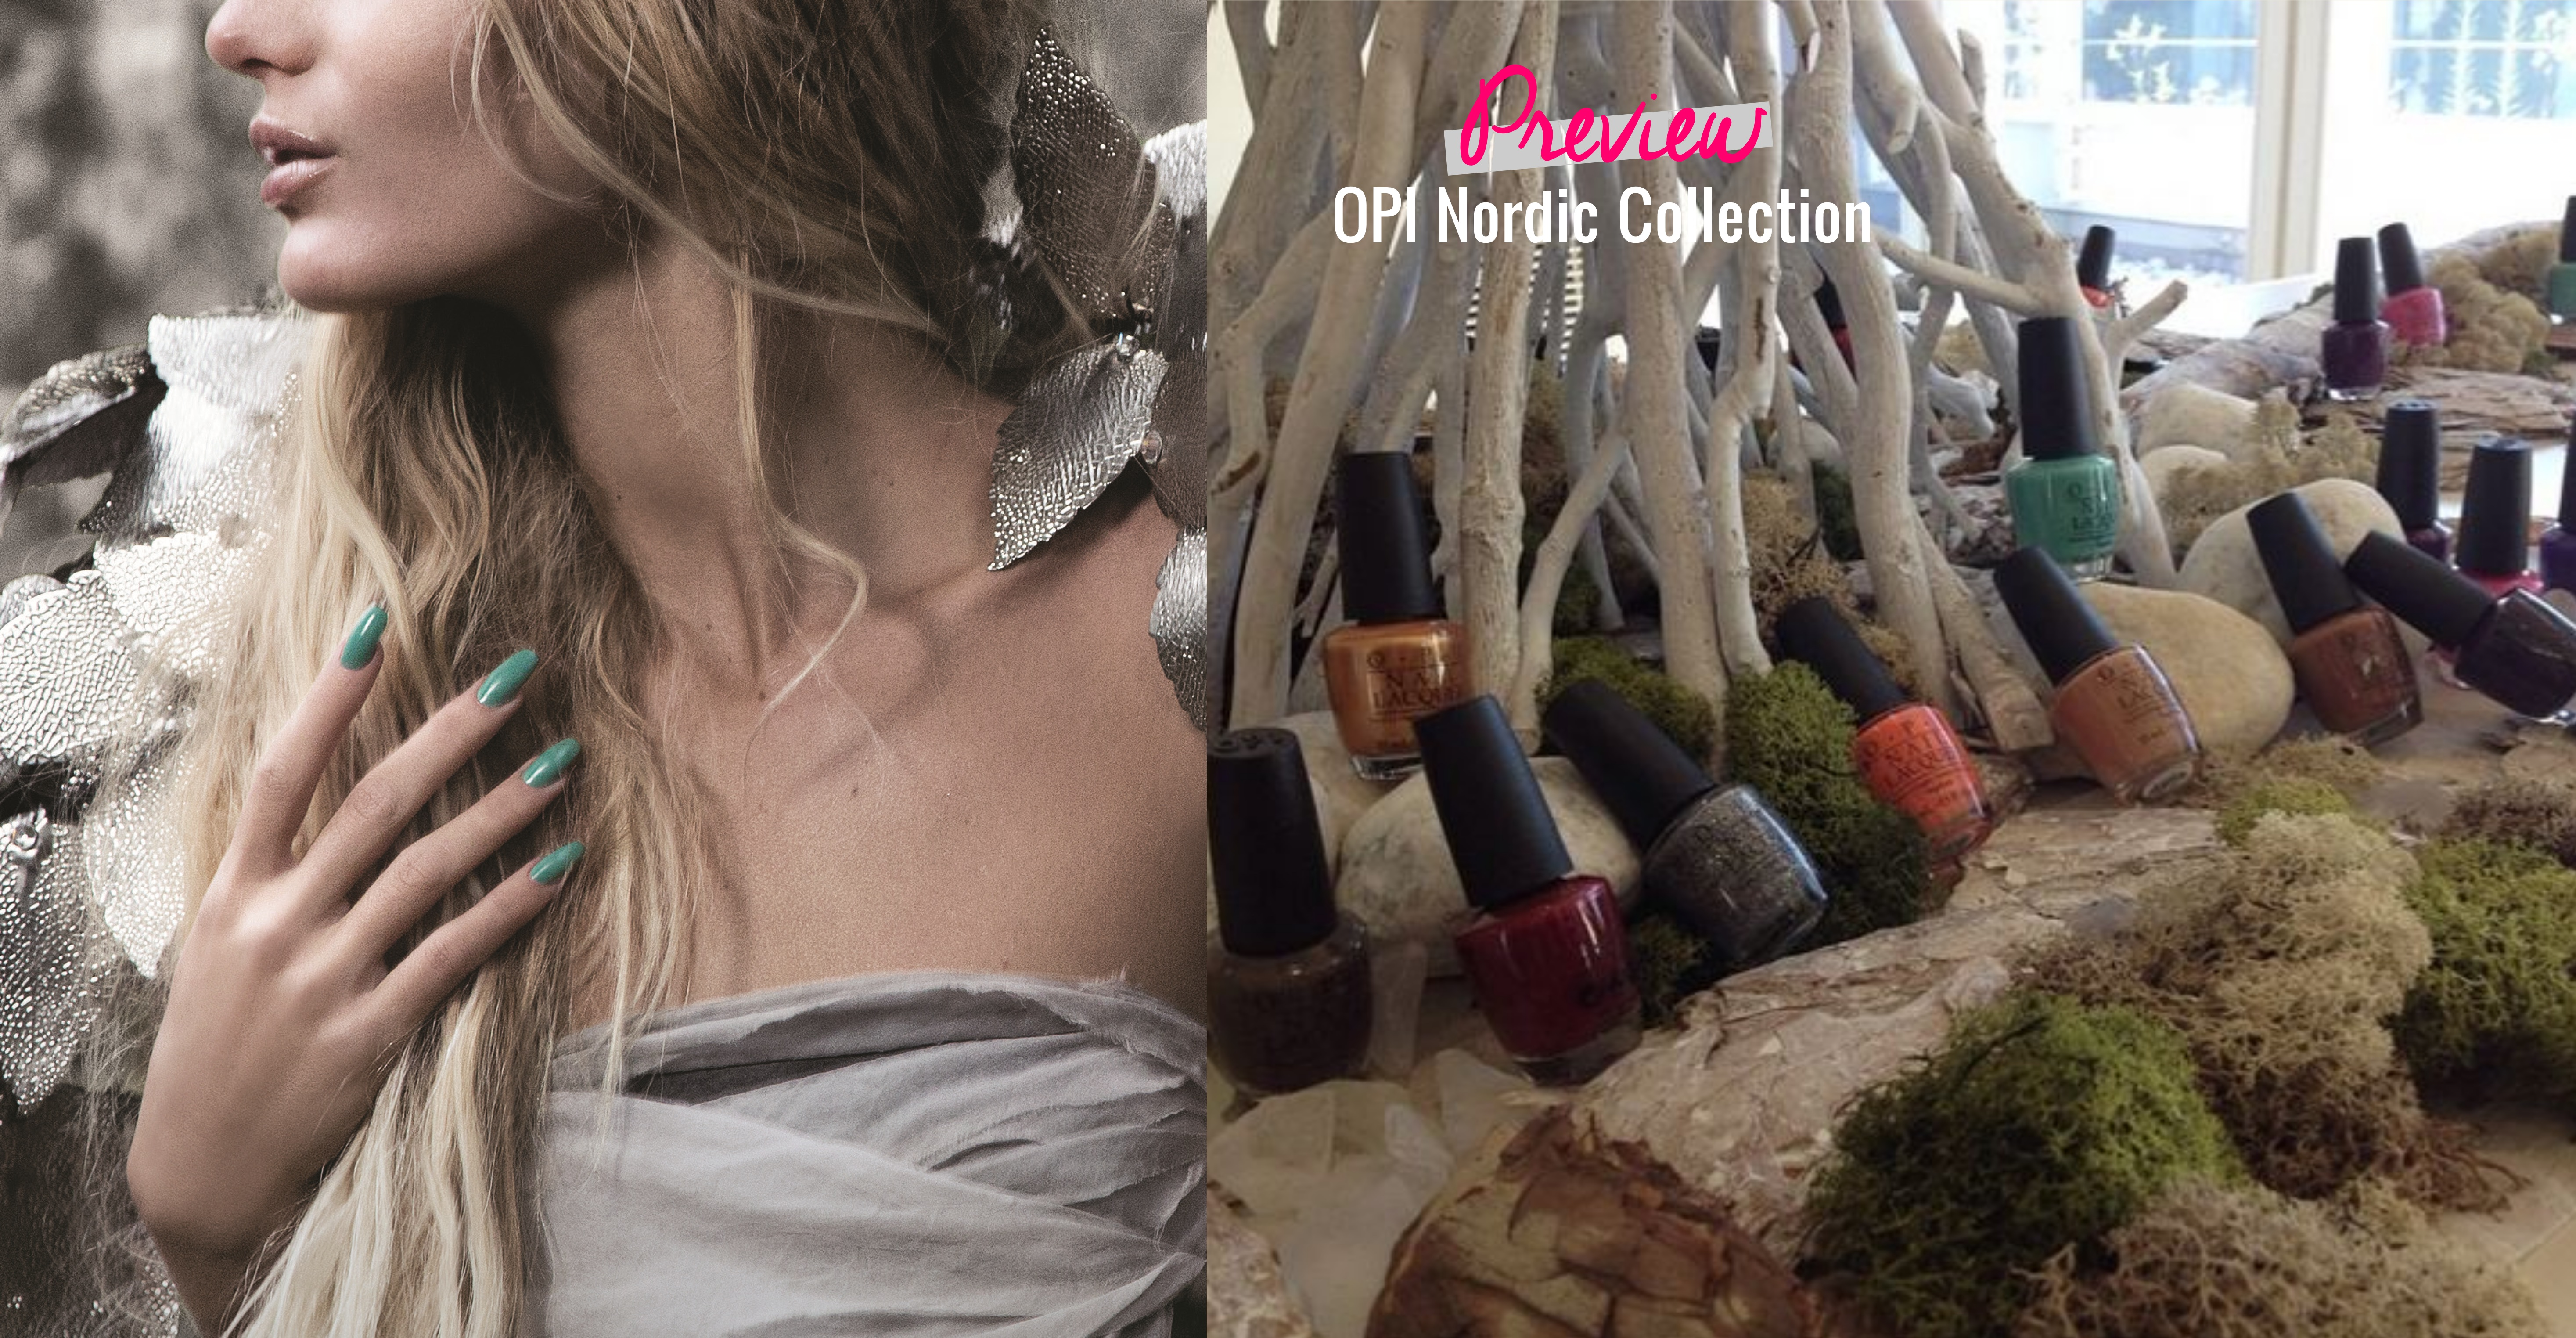 Beauty: Preview OPI Nordic Collection F/W 14